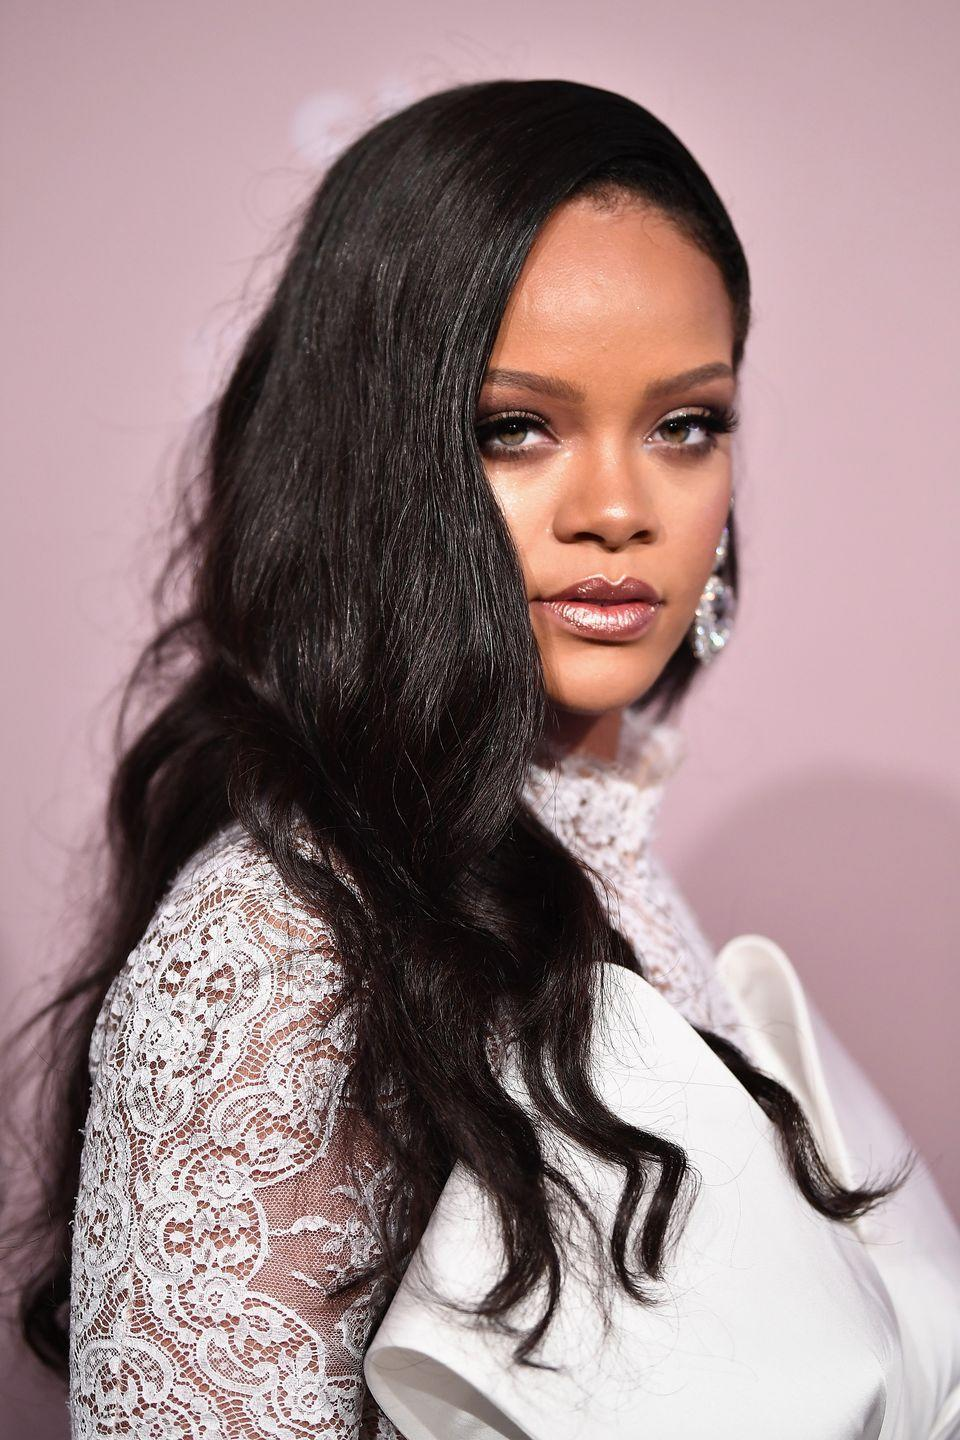 <p>Rihanna wears her hair down with slight waves at the end for an effortlessly cool look. </p>